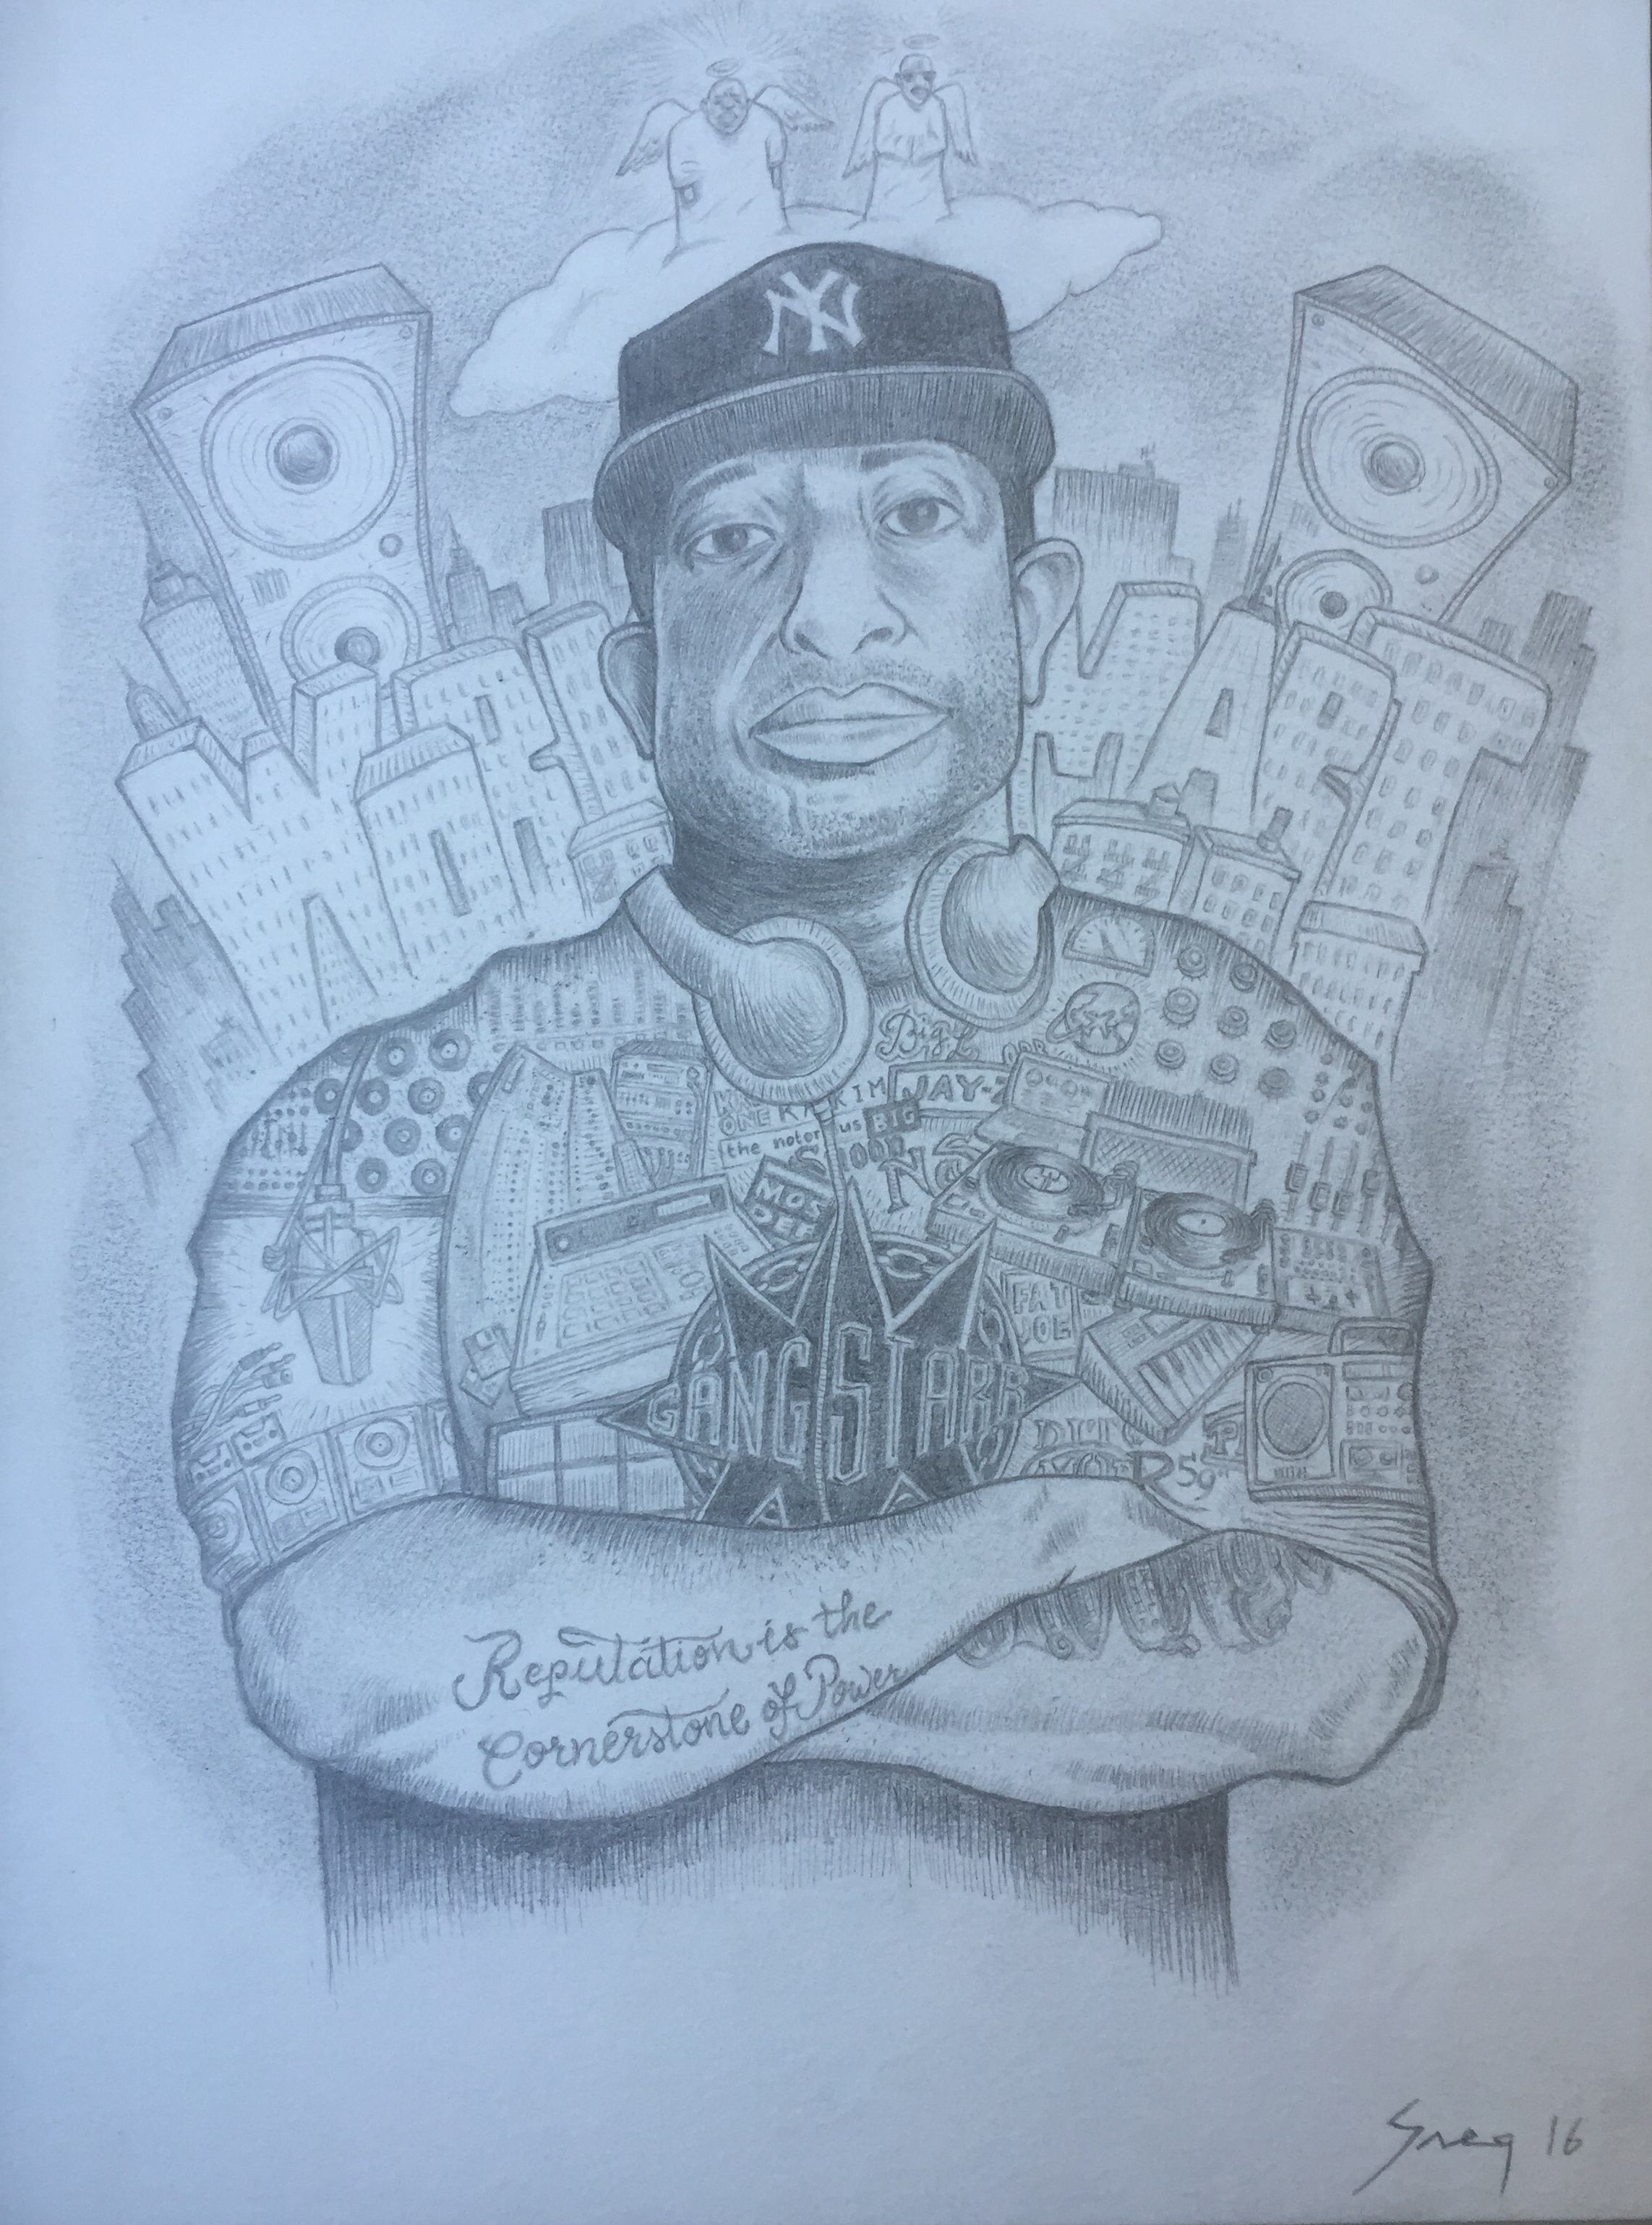 The pencil drawing of Dj Premier. He said he would hang the original in his NYC studio.